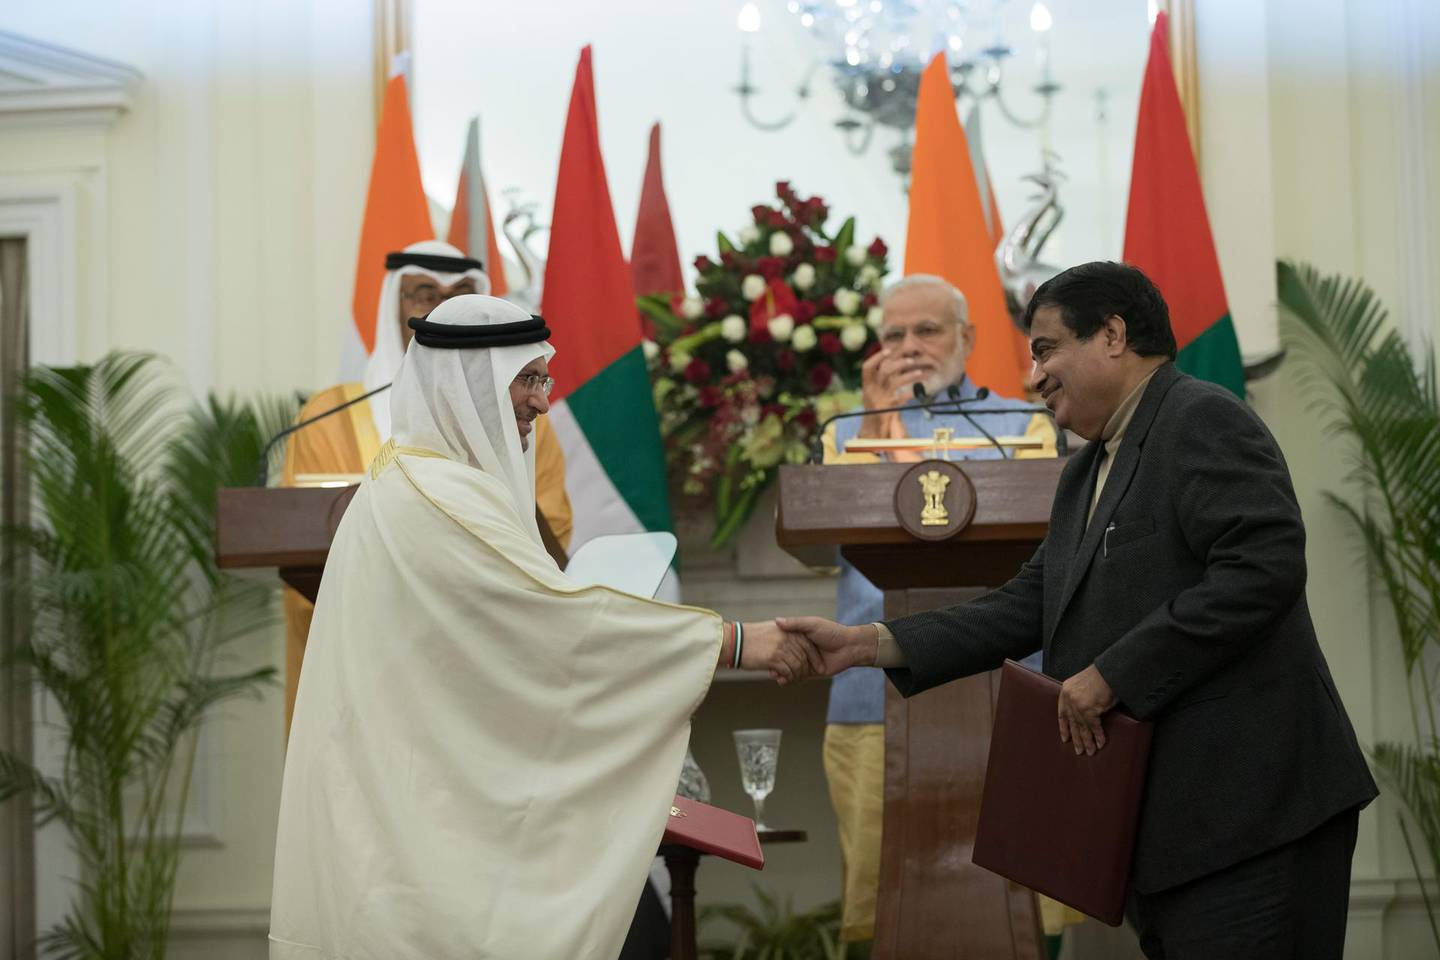 NEW DELHI, INDIA - January 25, 2017: HE Dr Anwar bin Mohamed Gargash, UAE Minister of State for Foreign Affairs (L) and Shri Nitin Gadkari, Minister for Road Transport and Highways and Shipping (R) stand for a photograph after the signing of an MOU between the Government of the Republic of India and the Government of the UAE on 'Institutional Cooperation on Maritime Transport', at Hyderabad House. ( Mohamed Al Hammadi / Crown Prince Court - Abu Dhabi ) --- *** Local Caption ***  20170125MH_C189464.jpg